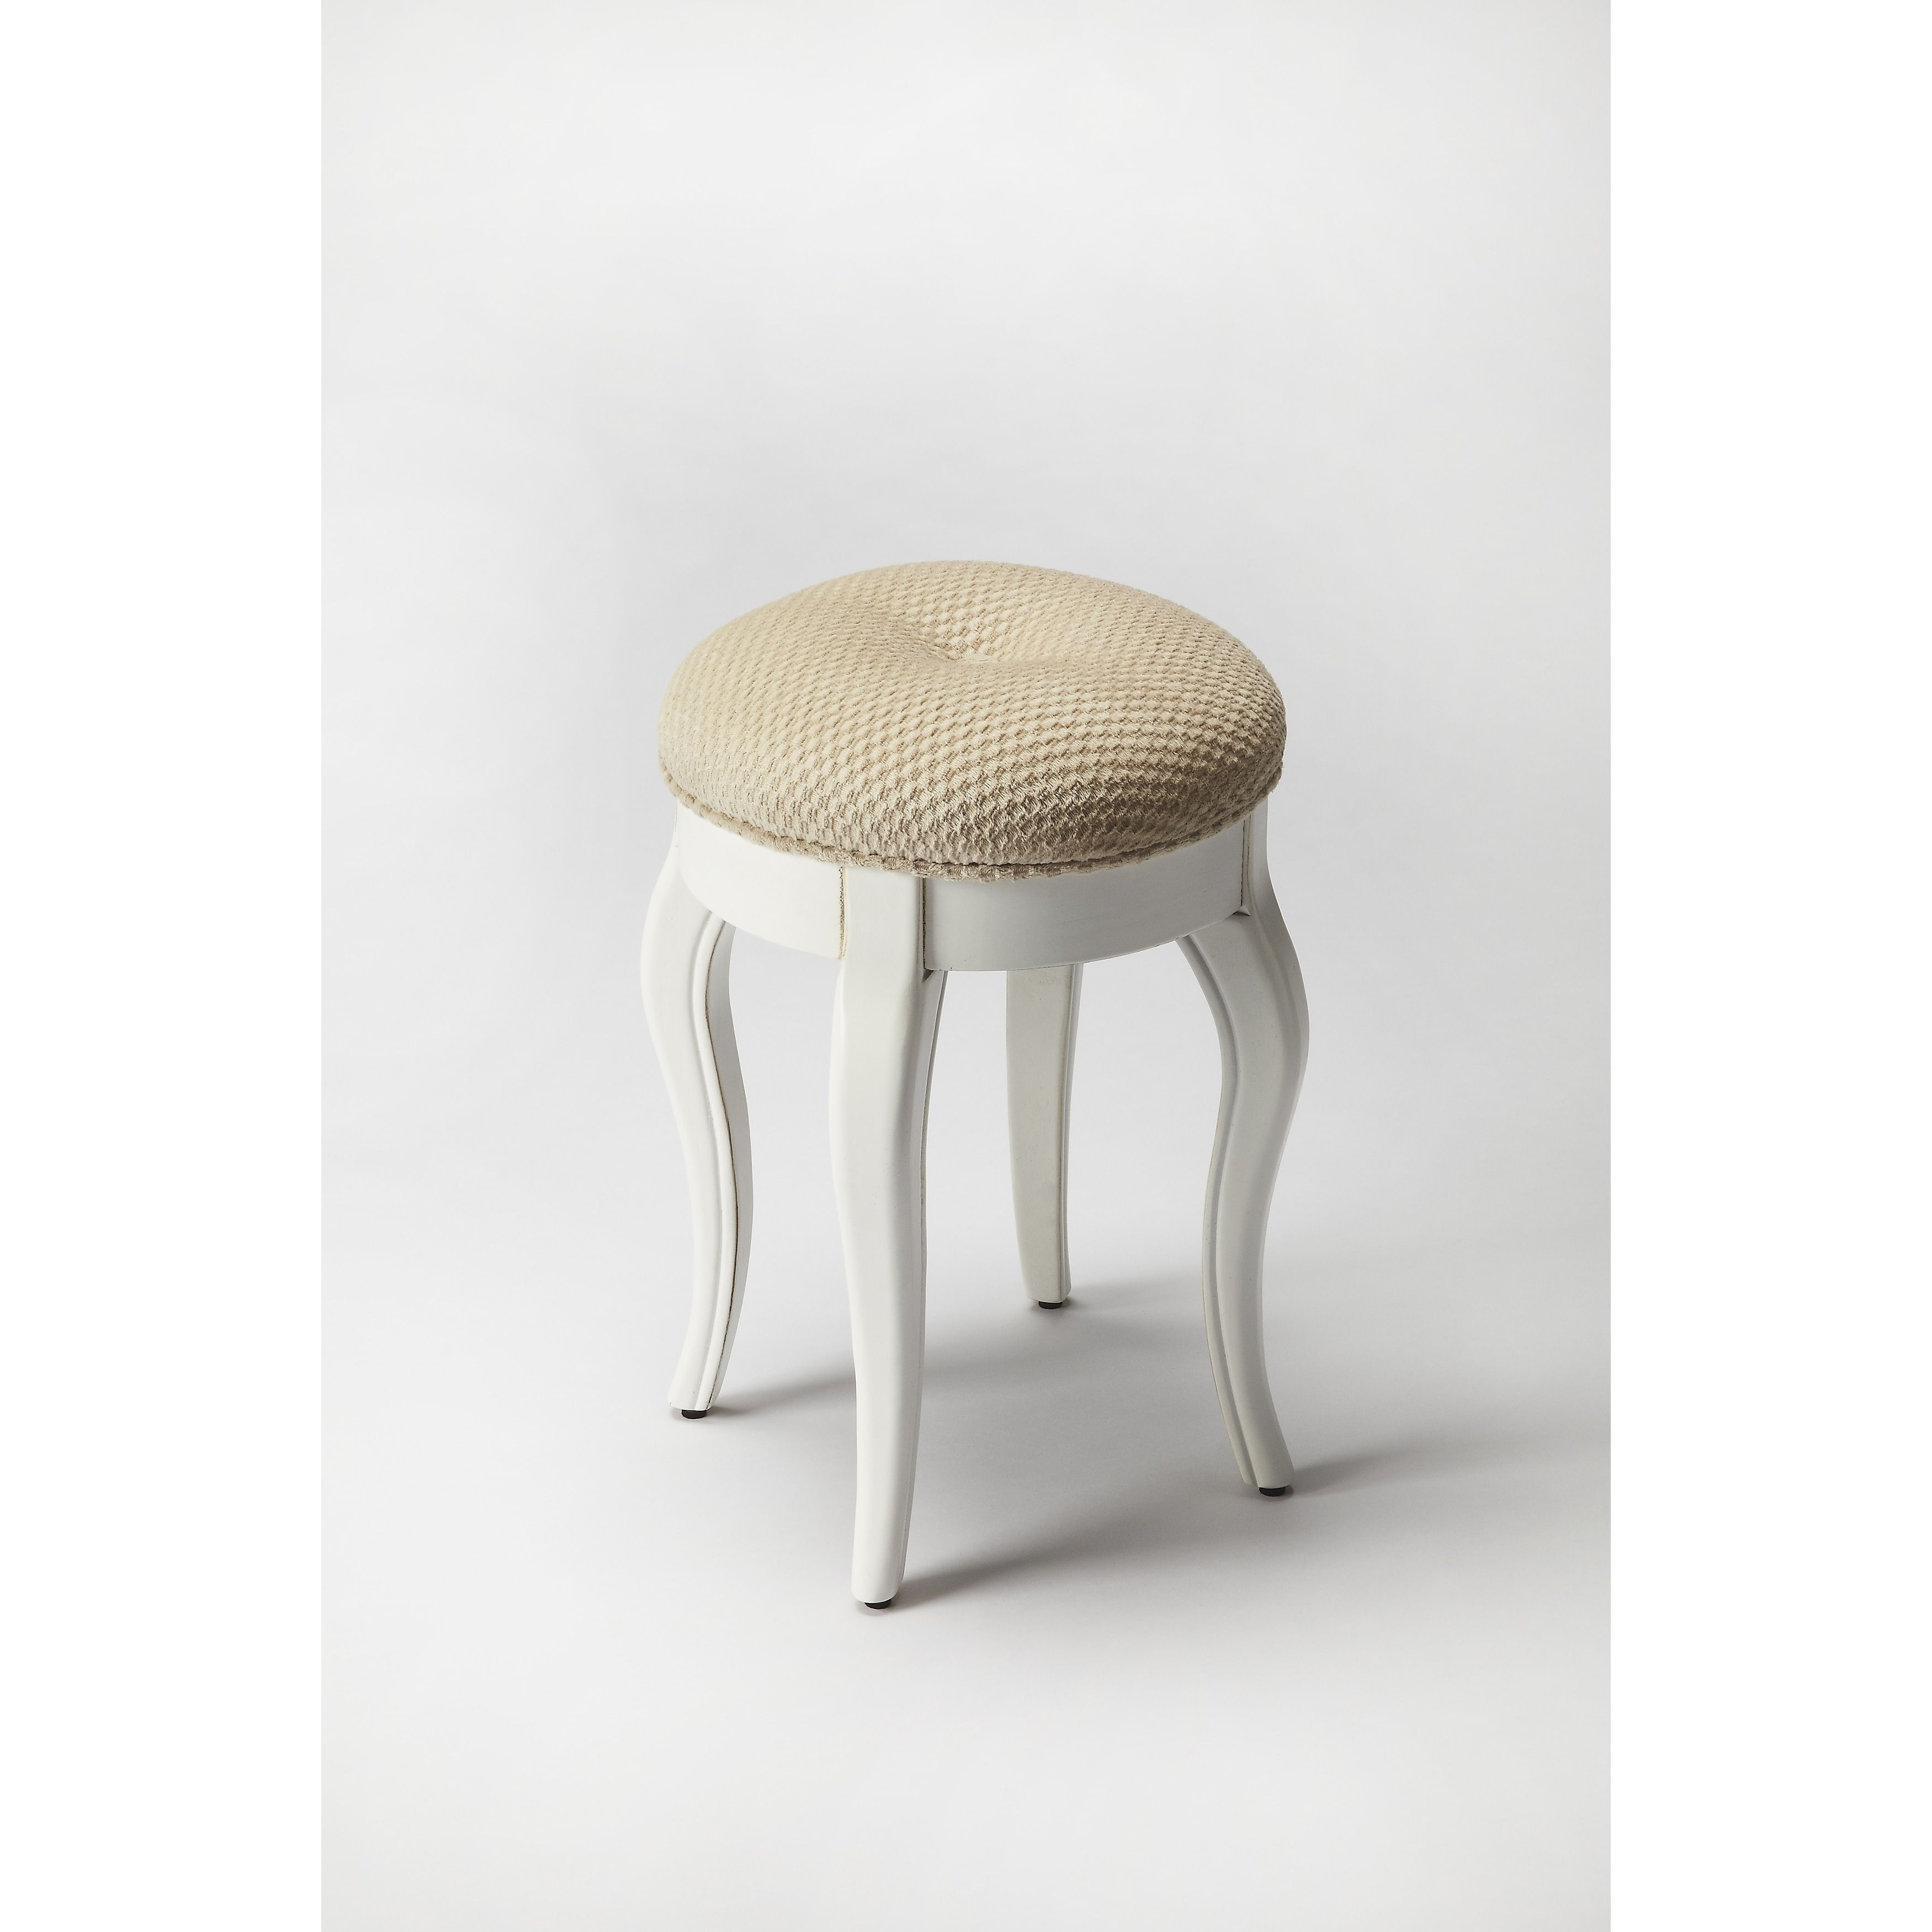 Awe Inspiring Butler Nadia Cottage White Vanity Stool Products In 2019 Andrewgaddart Wooden Chair Designs For Living Room Andrewgaddartcom